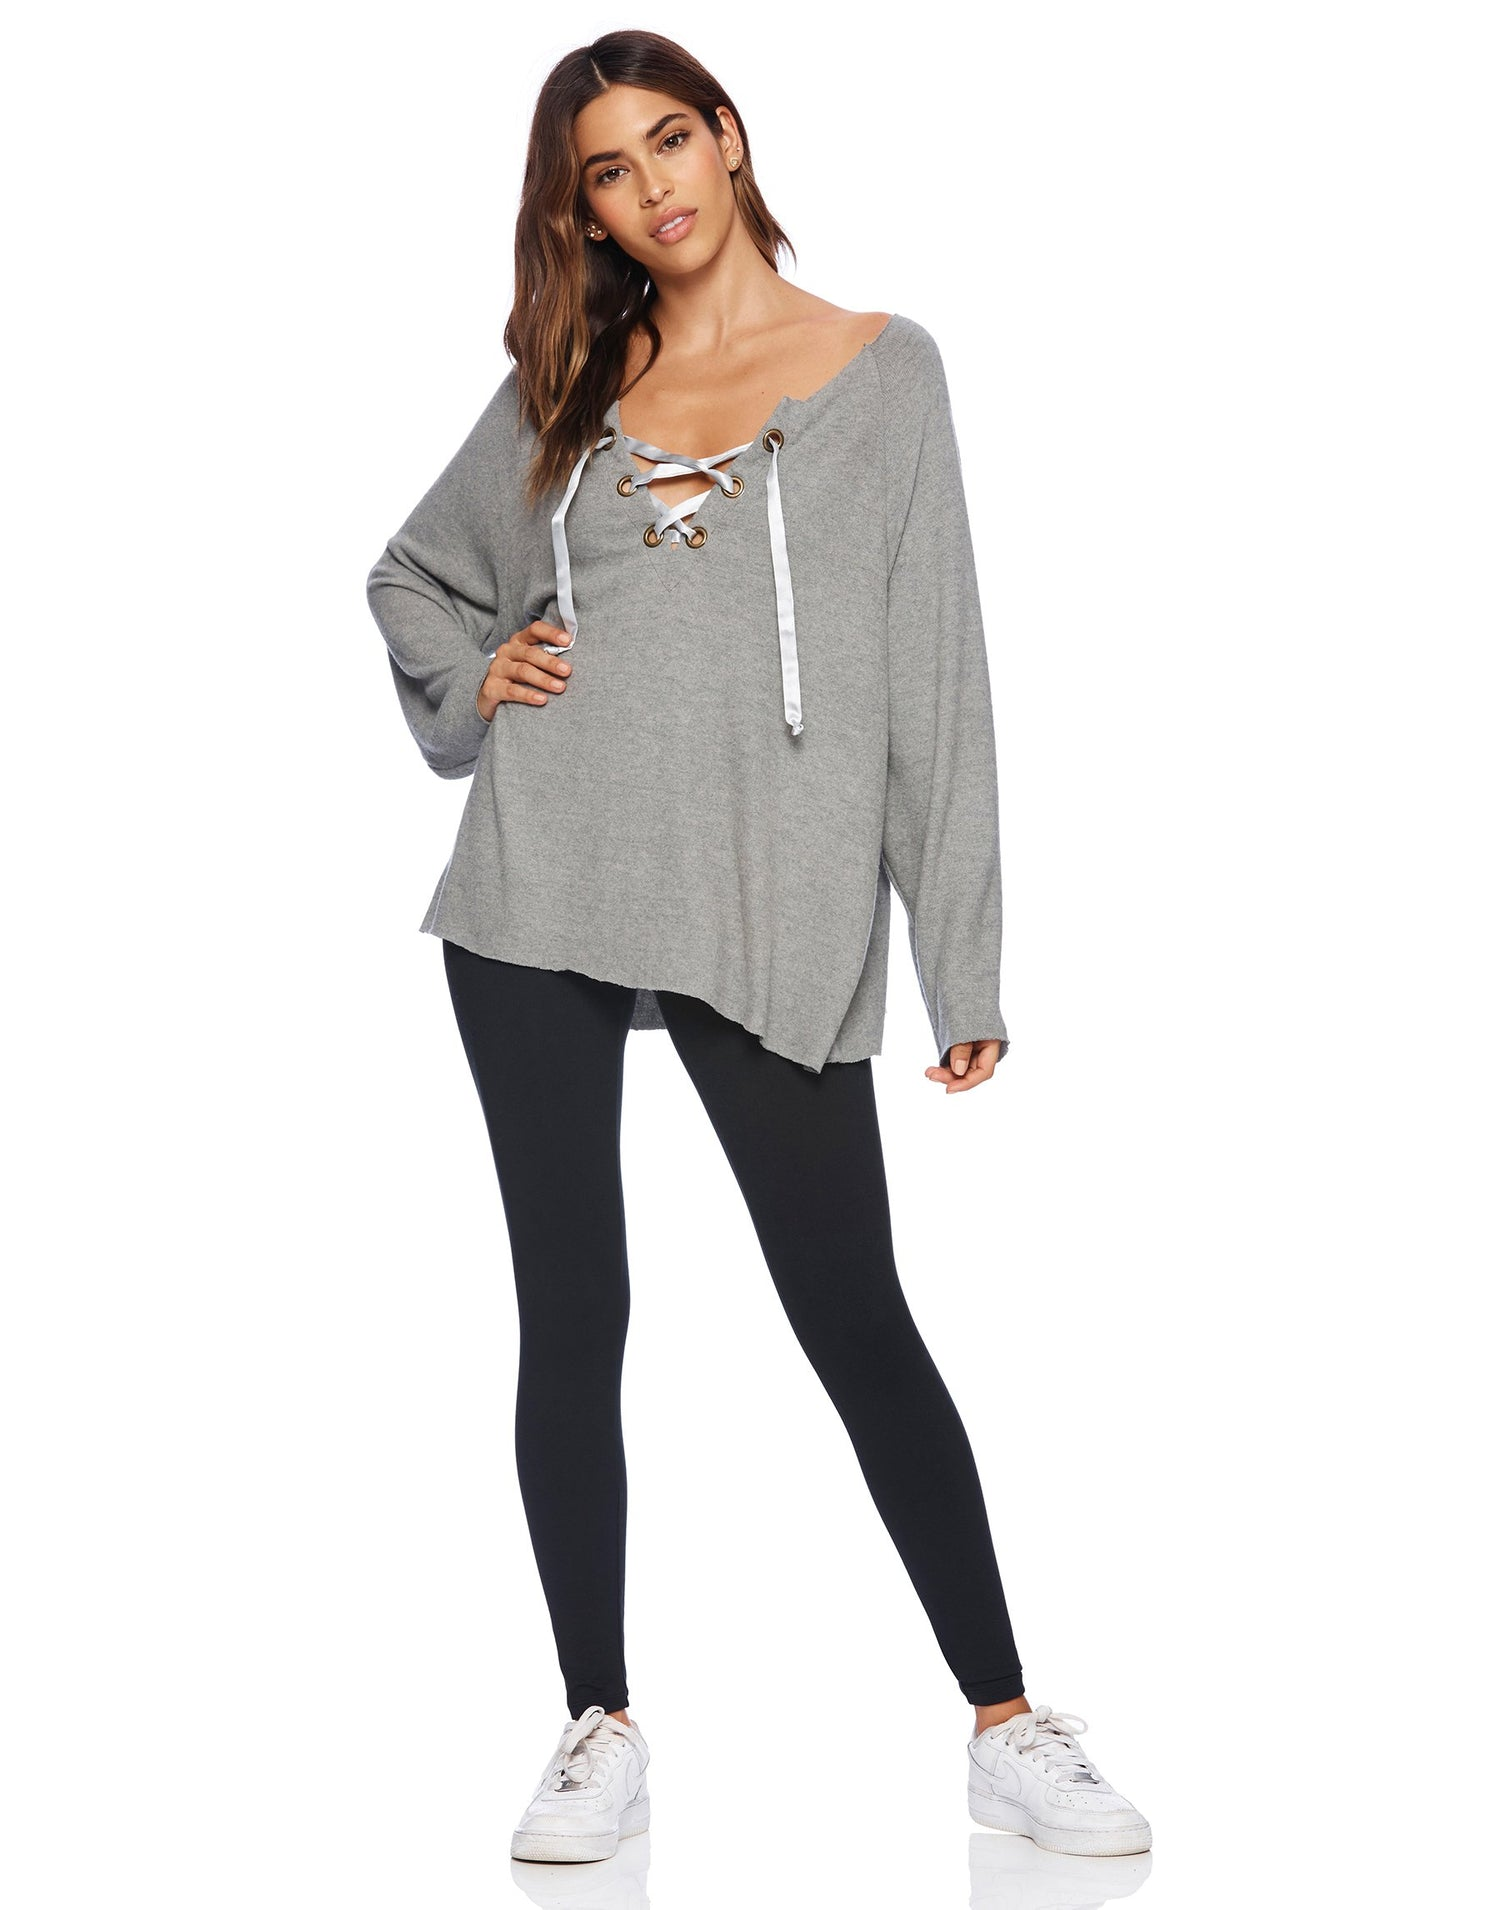 Front View - Heather Gray Josie Sweatshirt